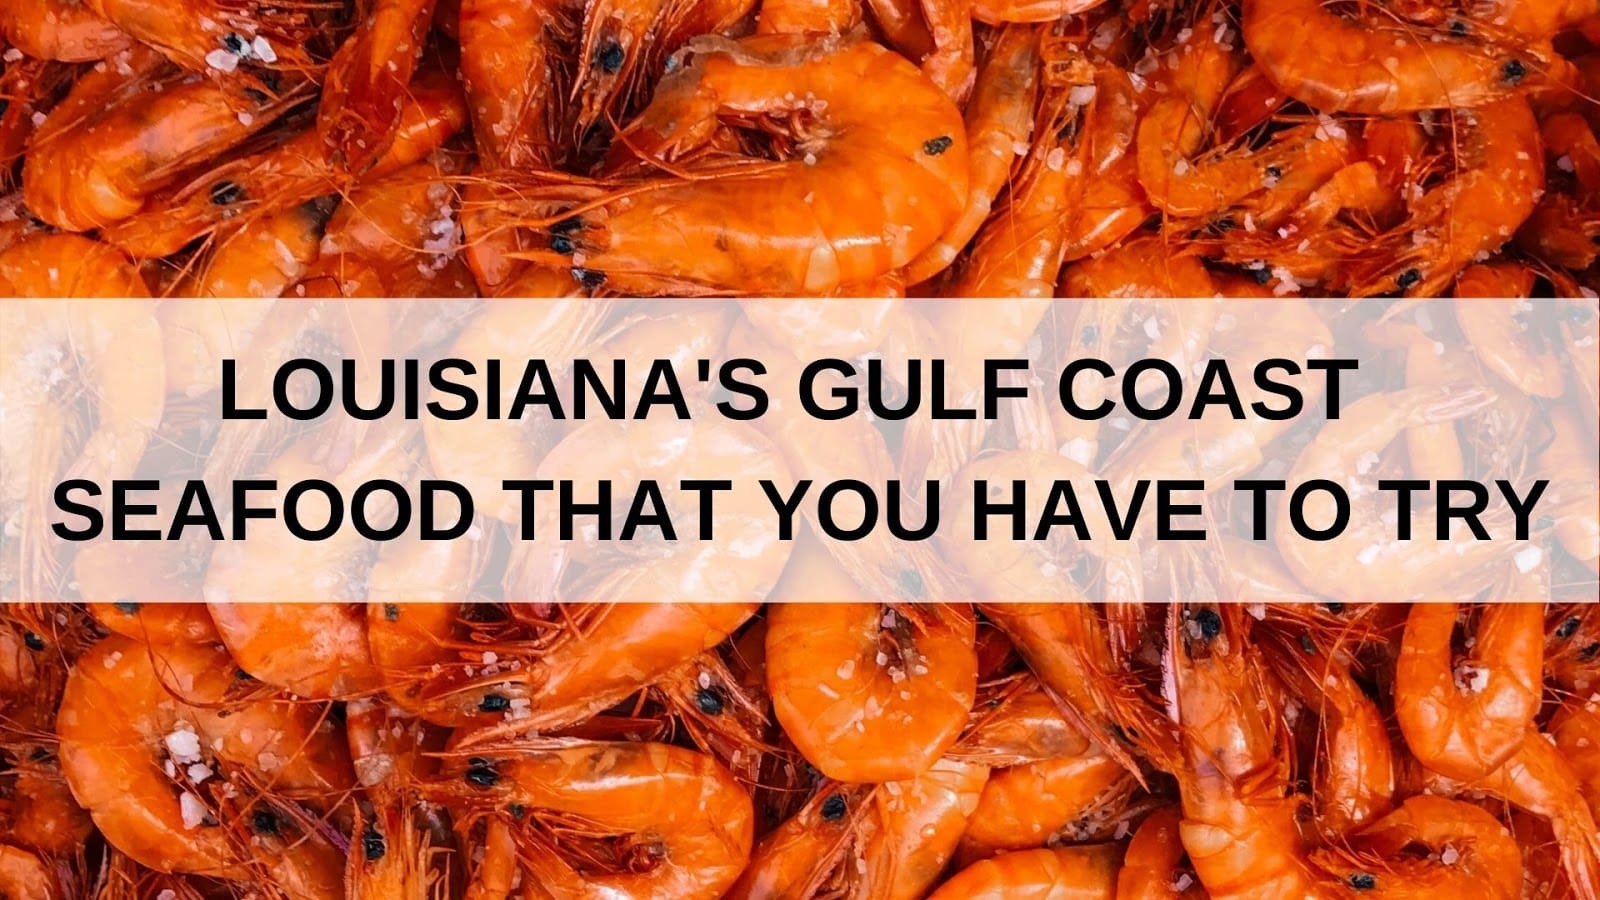 Louisiana Gulf Coast Seafood That You Have To Try